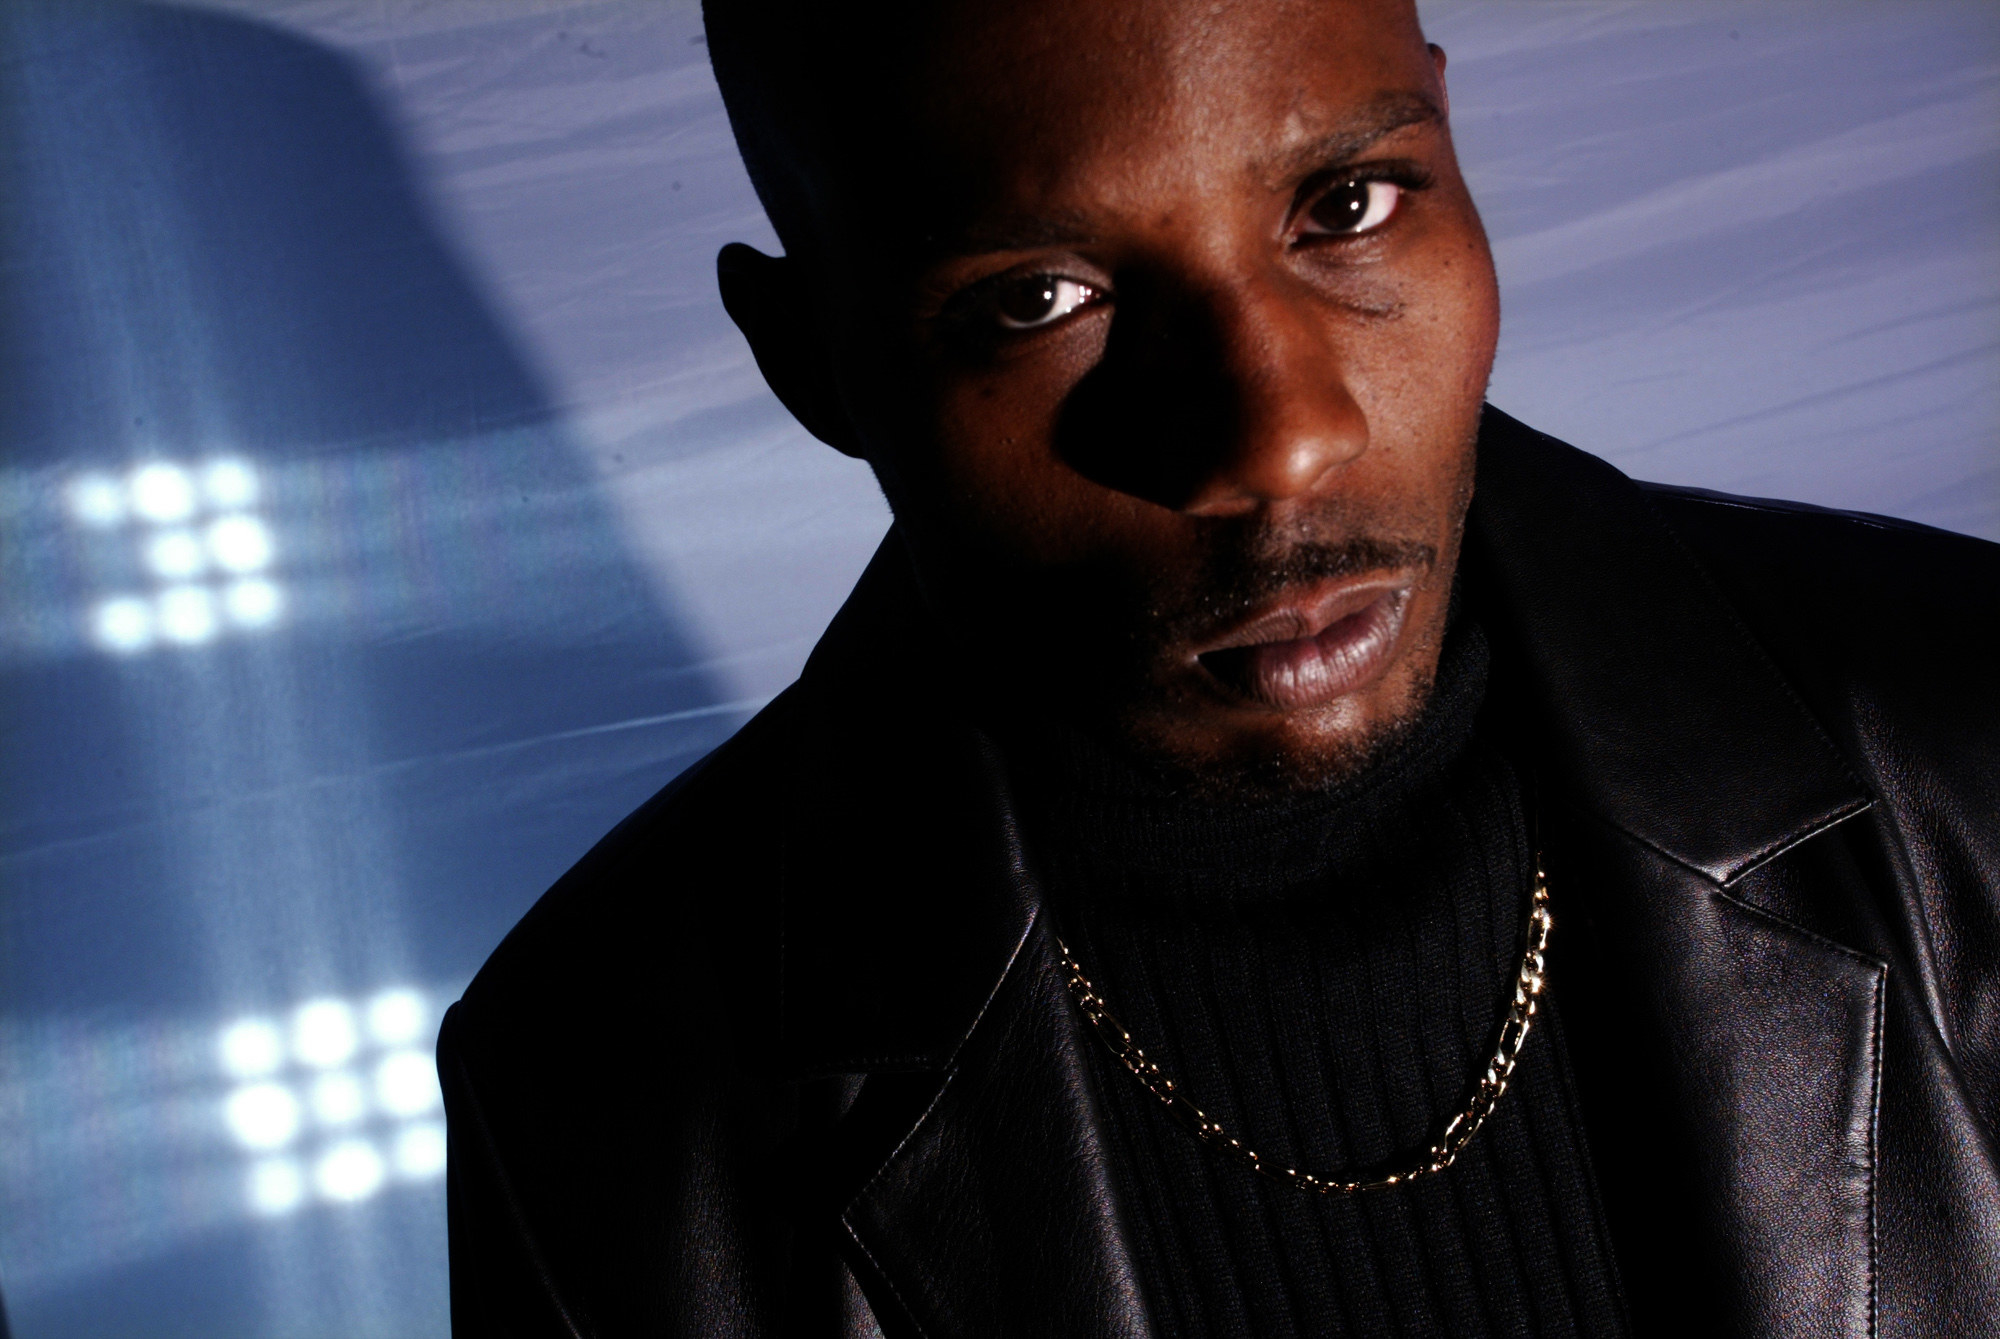 DMX in a black leather jacket gazes seriously at the camera